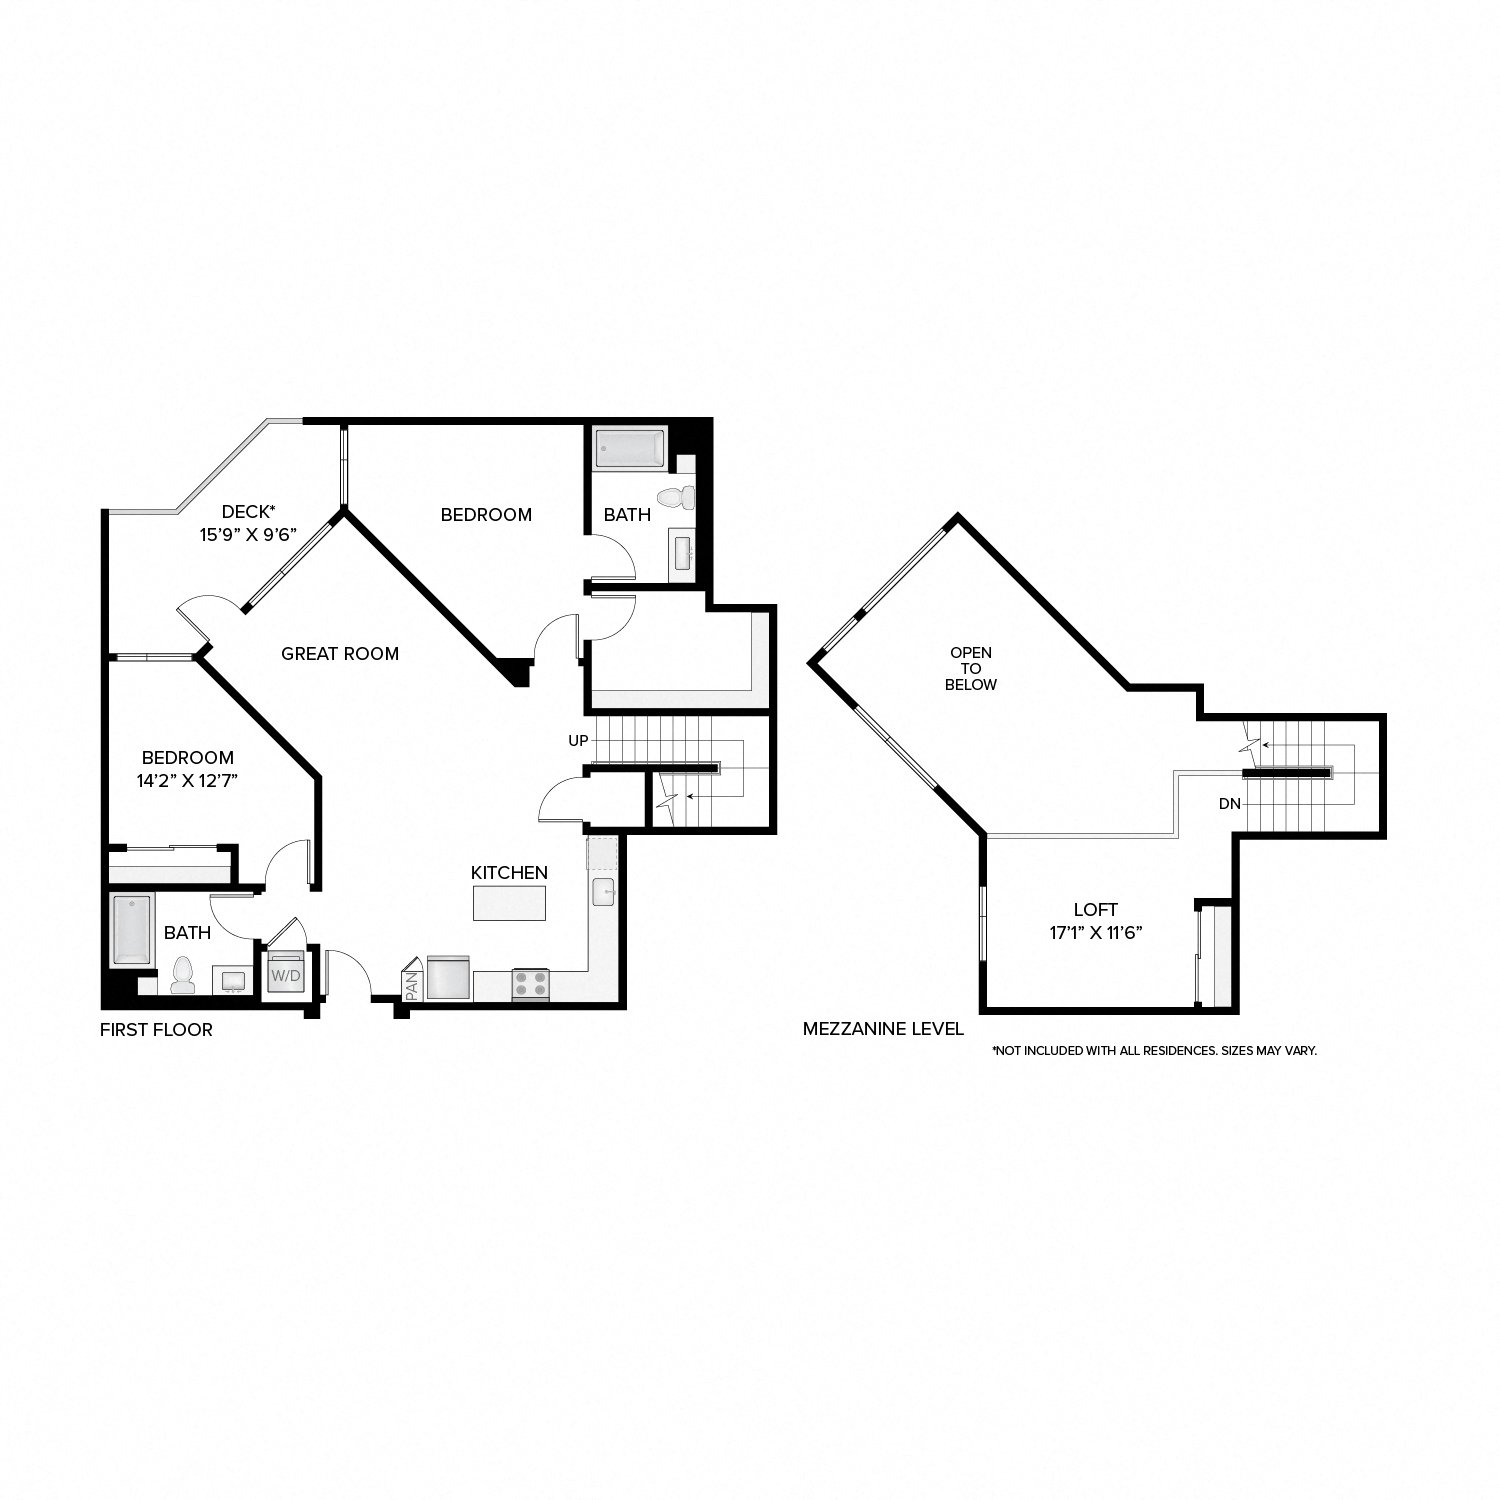 Diagram of the Oak Loft floor plan. Two bedrooms, two bathrooms, a loft, an open kitchen, dining, and living area, a washer dryer, and in select residences, a deck.